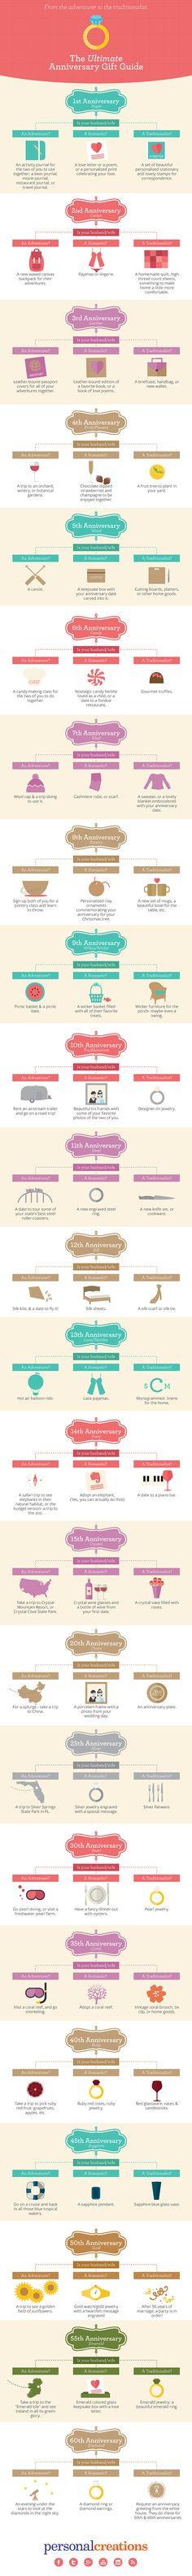 The Ultimate Anniversary Gift Guide For Every Kind Of Spouse--we are really trying to stay by this. Makes it fun :)